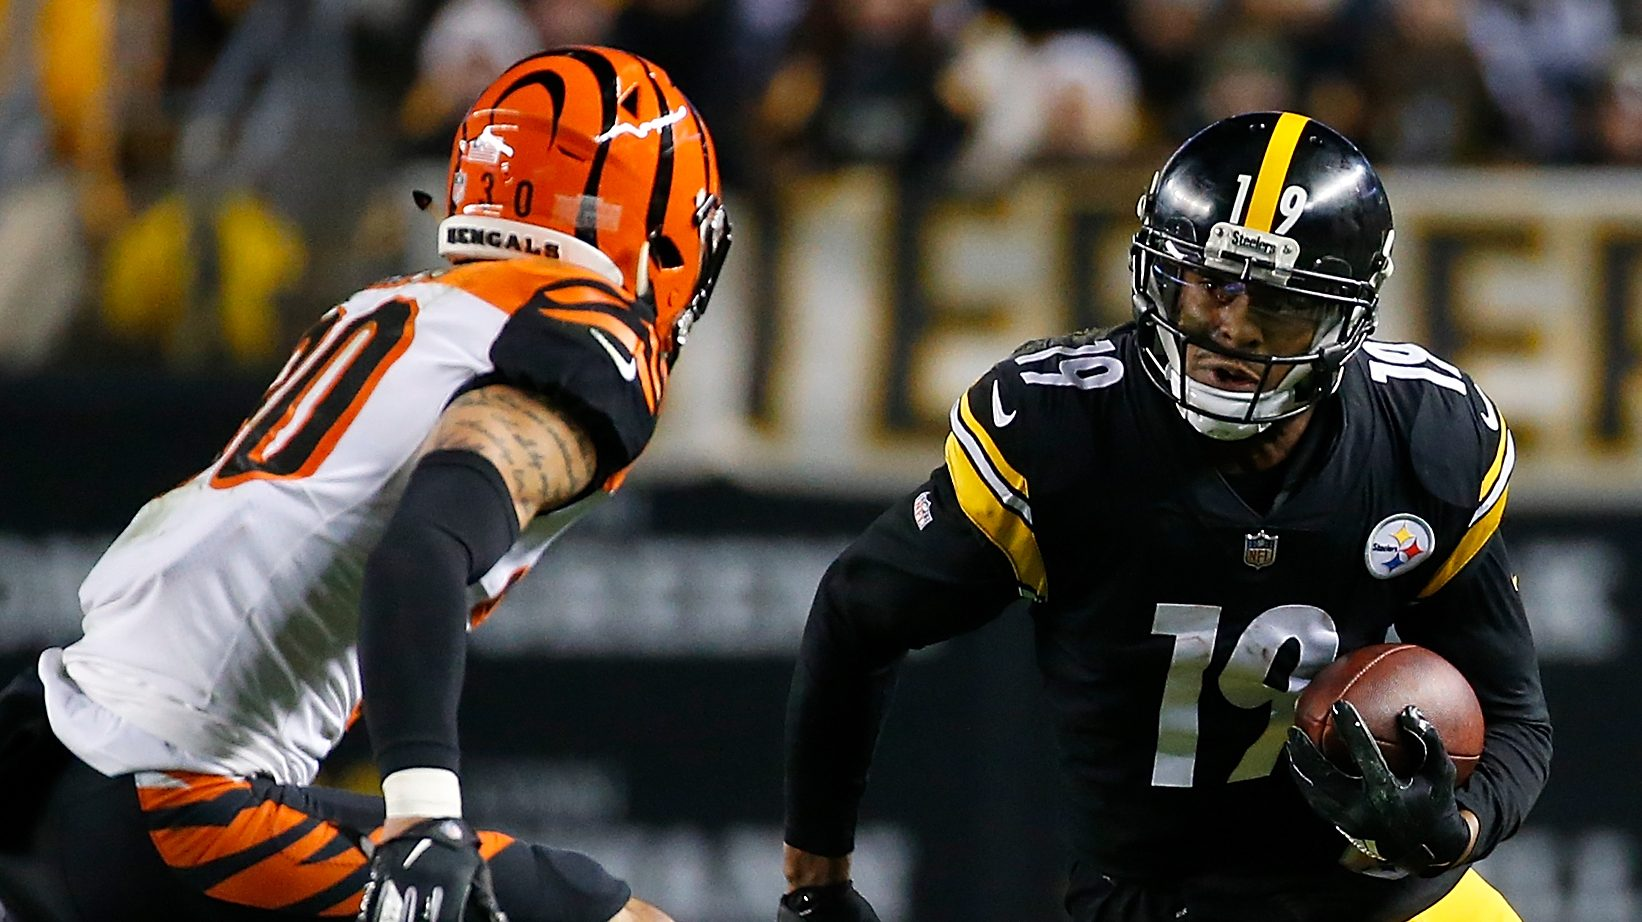 Bengals vs steelers betting prediction us sports betting sites that accept paypal